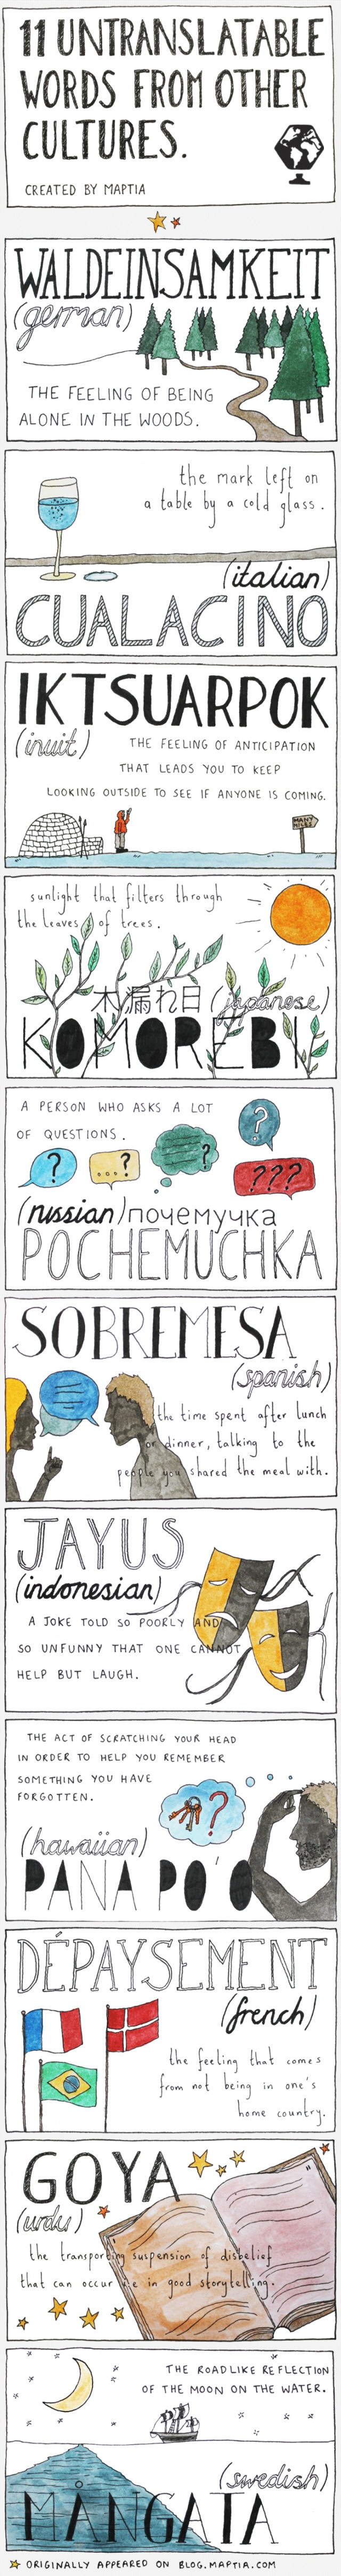 11-untranslatable-words-from-other-cultures_52152bbe65e85_w1500.png